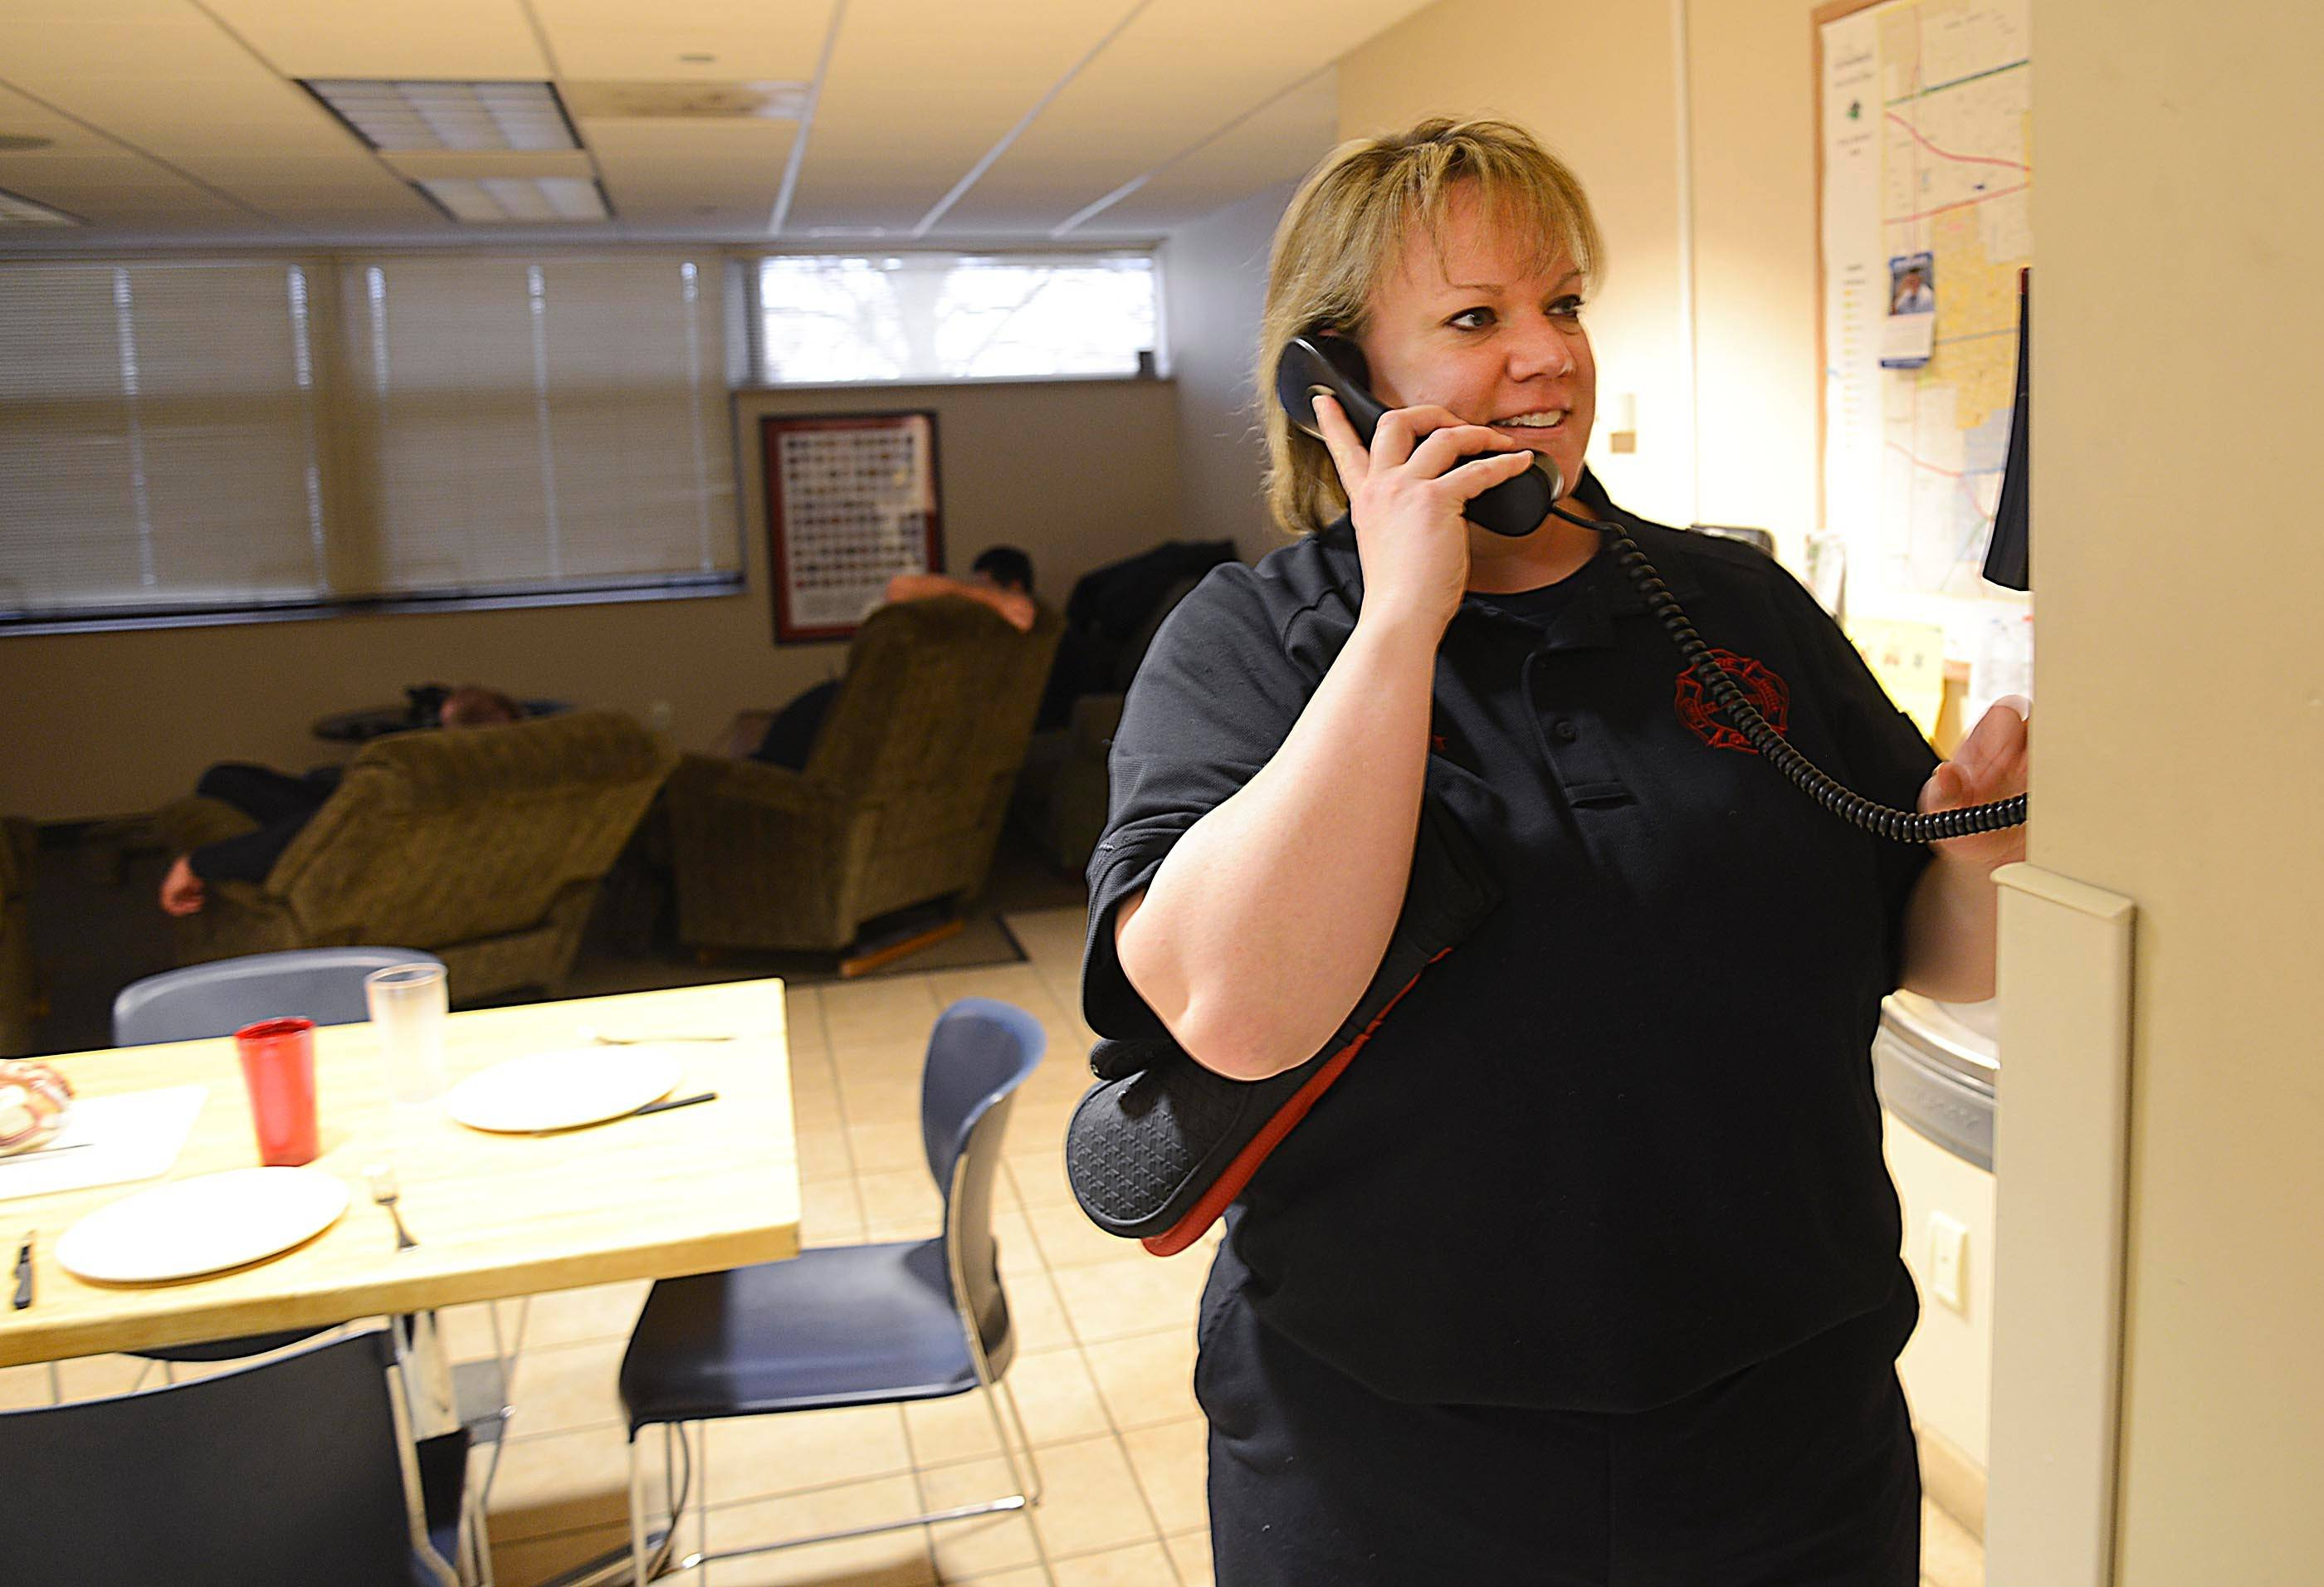 Schaumburg firefighter/paramedic Cheryl Seibert has learned strategies to lose weight while working irregular hours.